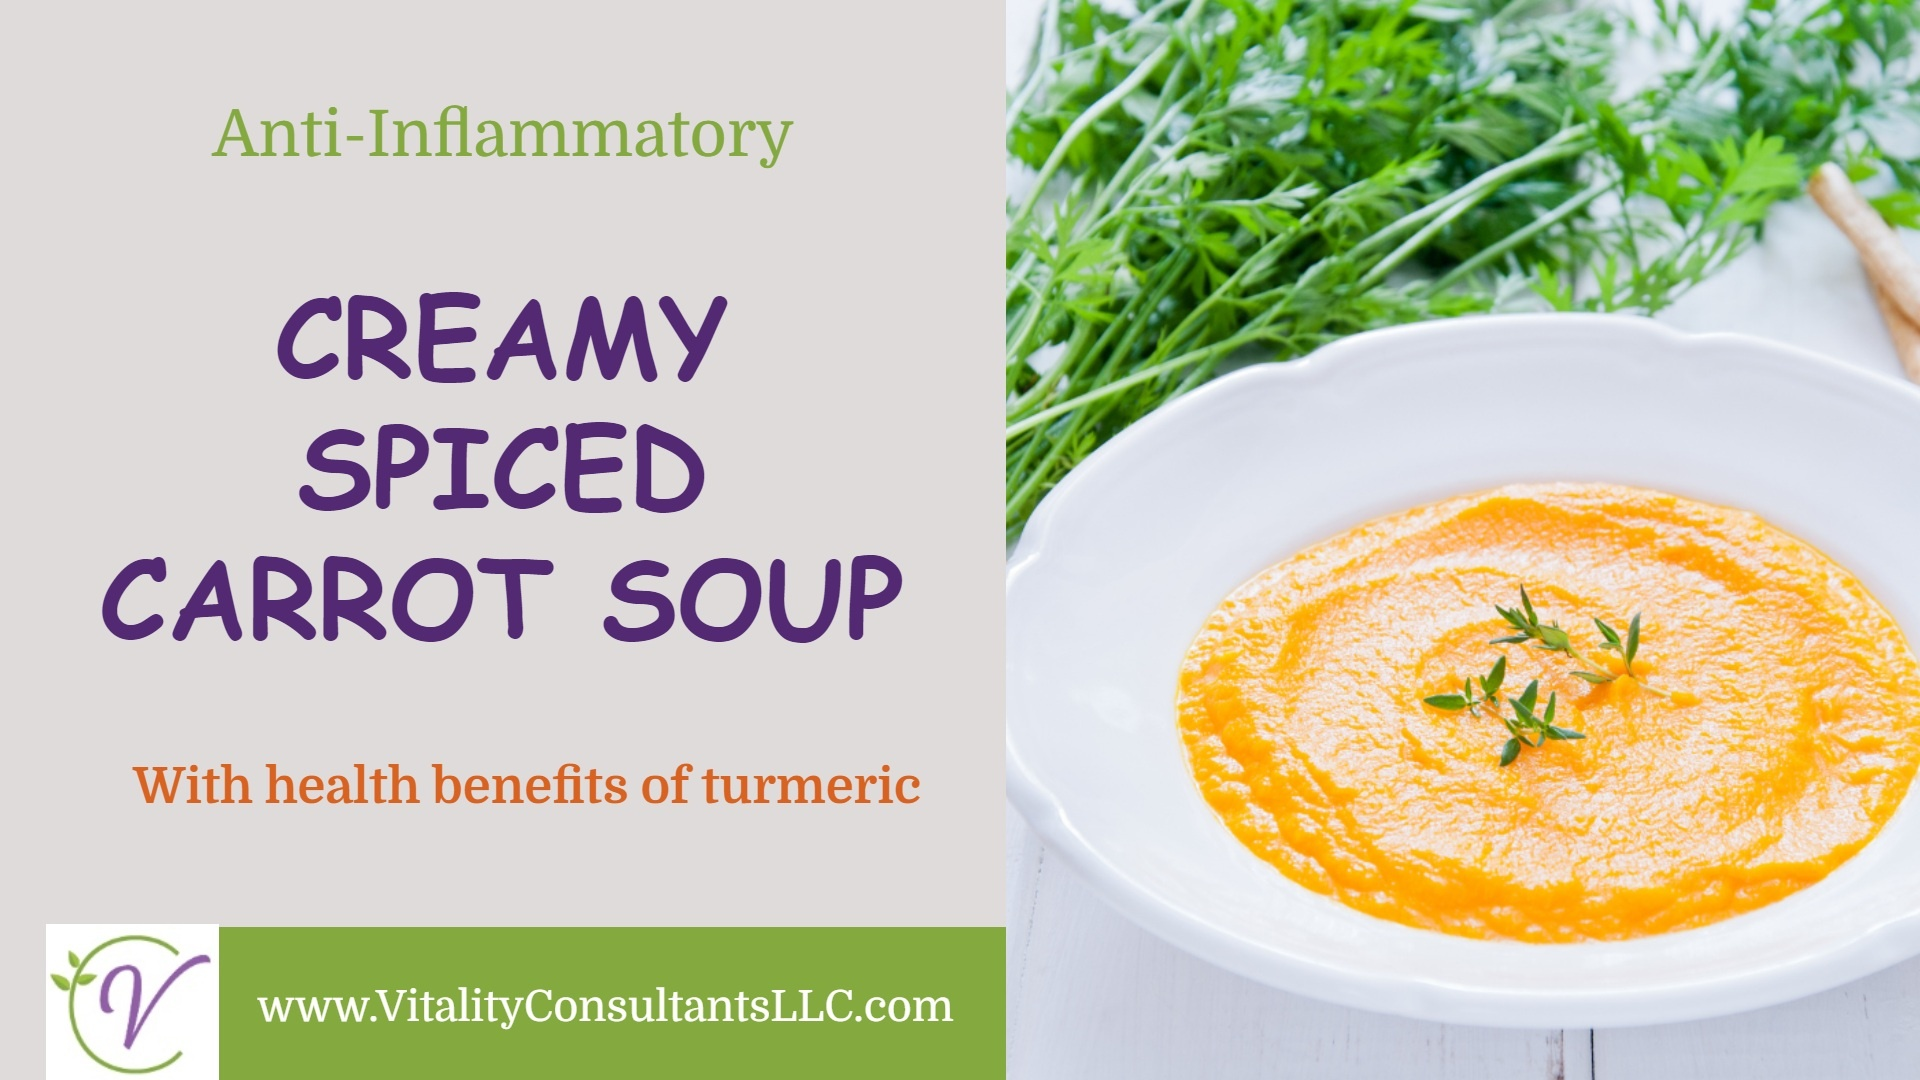 Creamy Spiced Carrot Soup